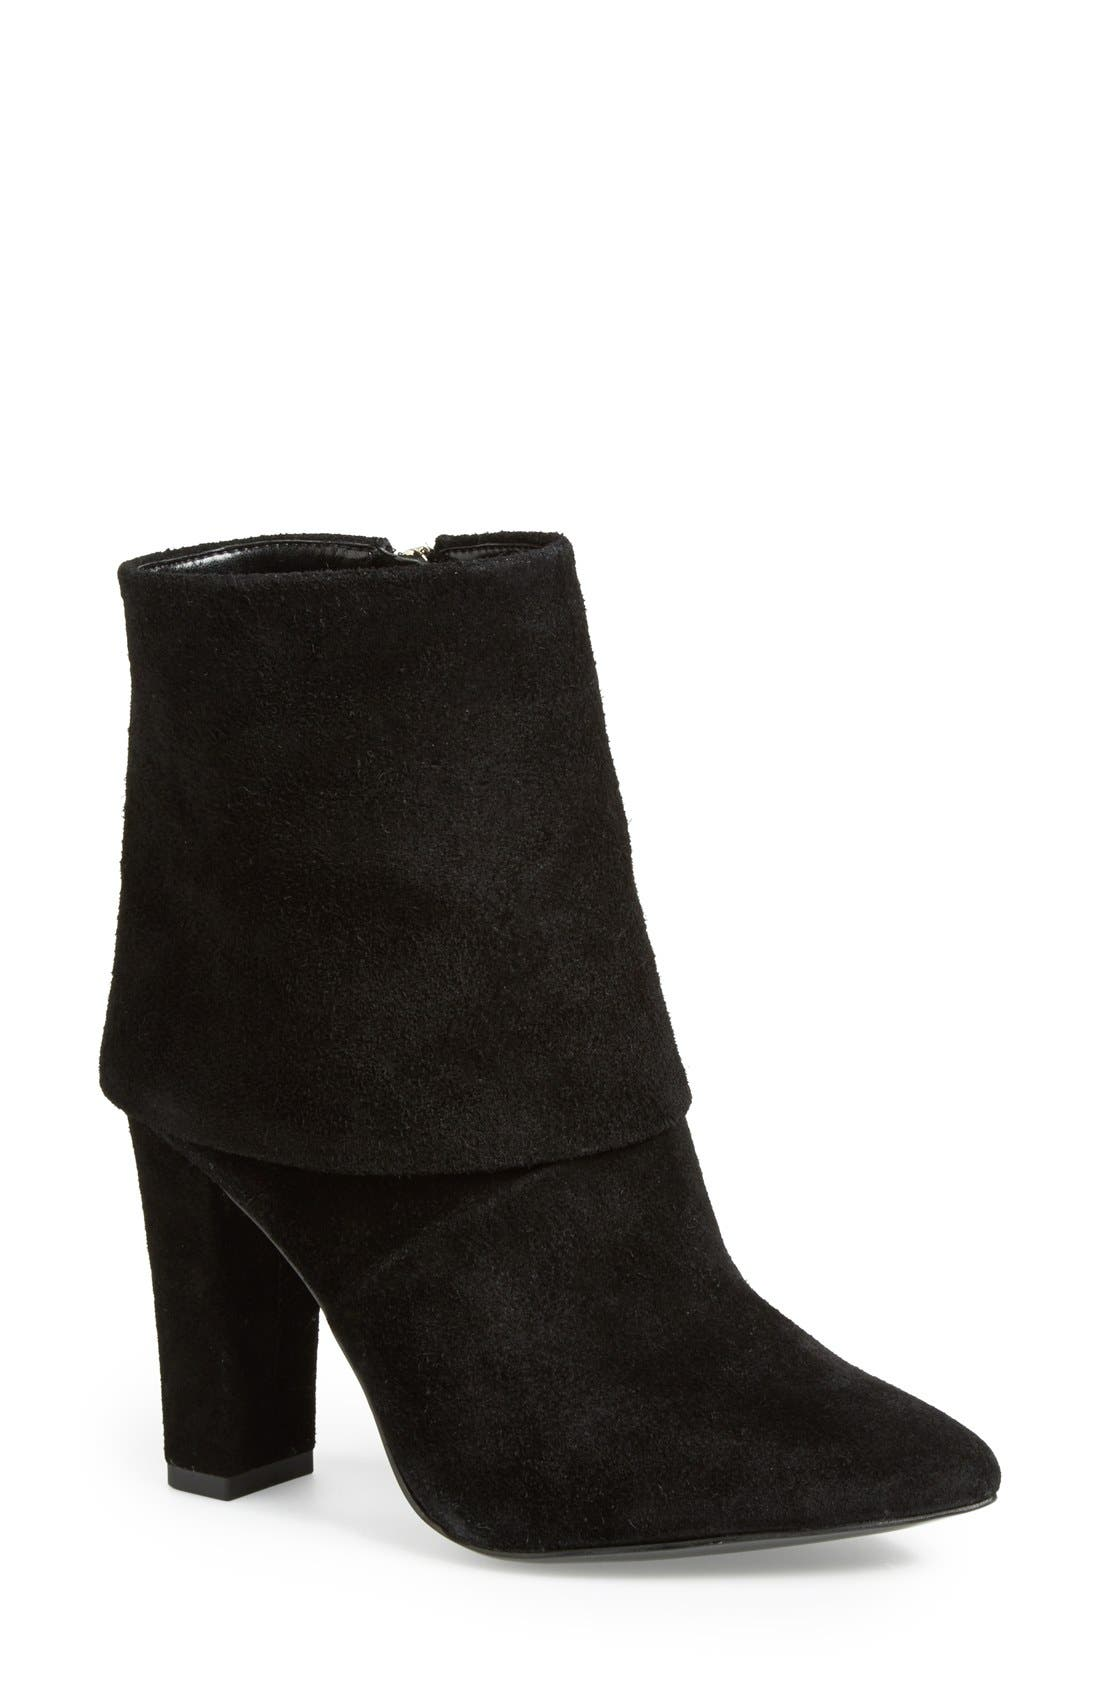 Main Image - Vince Camuto 'Amya' Suede Bootie (Women)